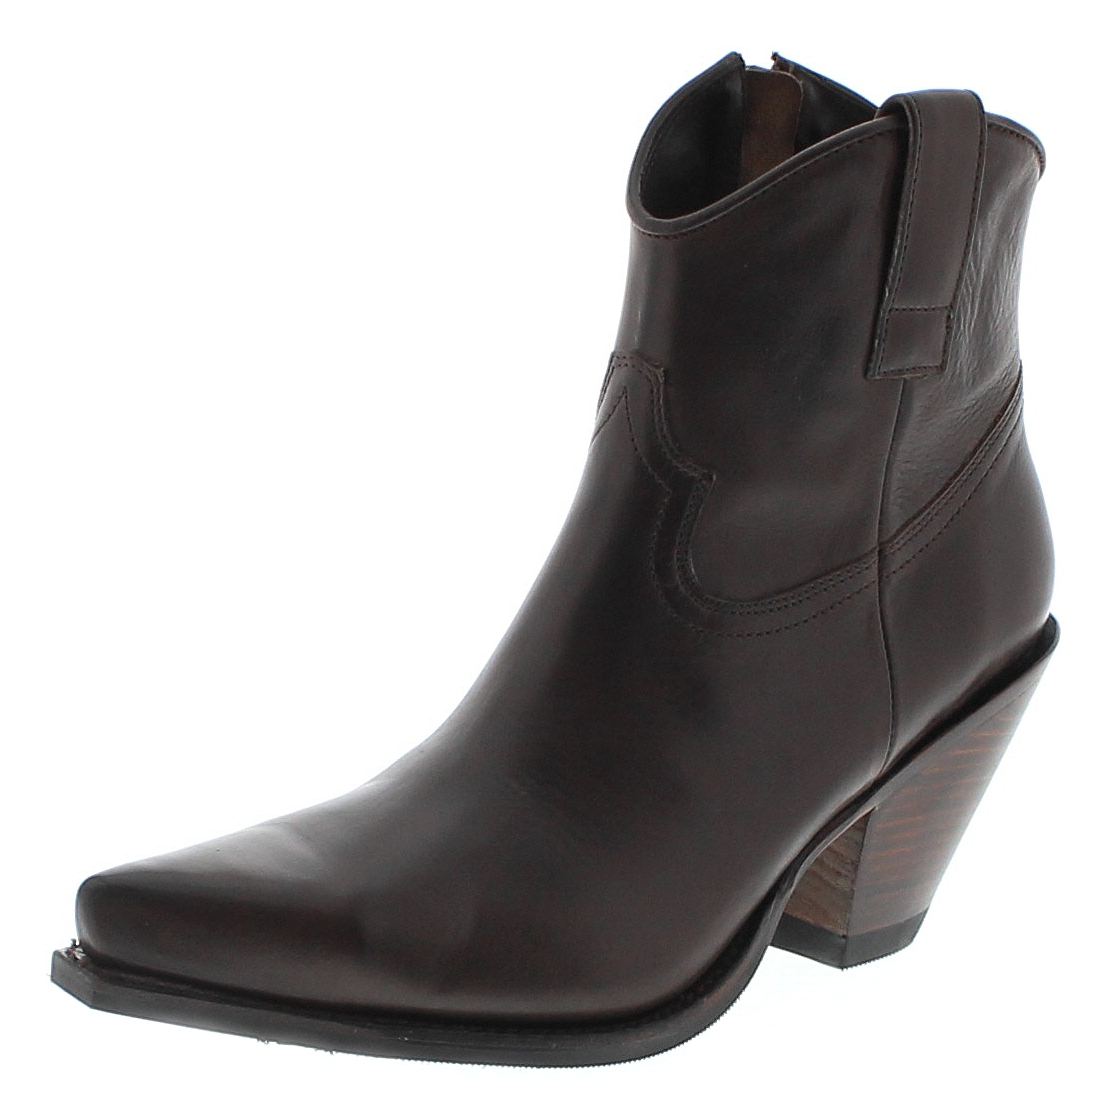 Sendra Boots 15521 Marron Ladies Western Boots - brown